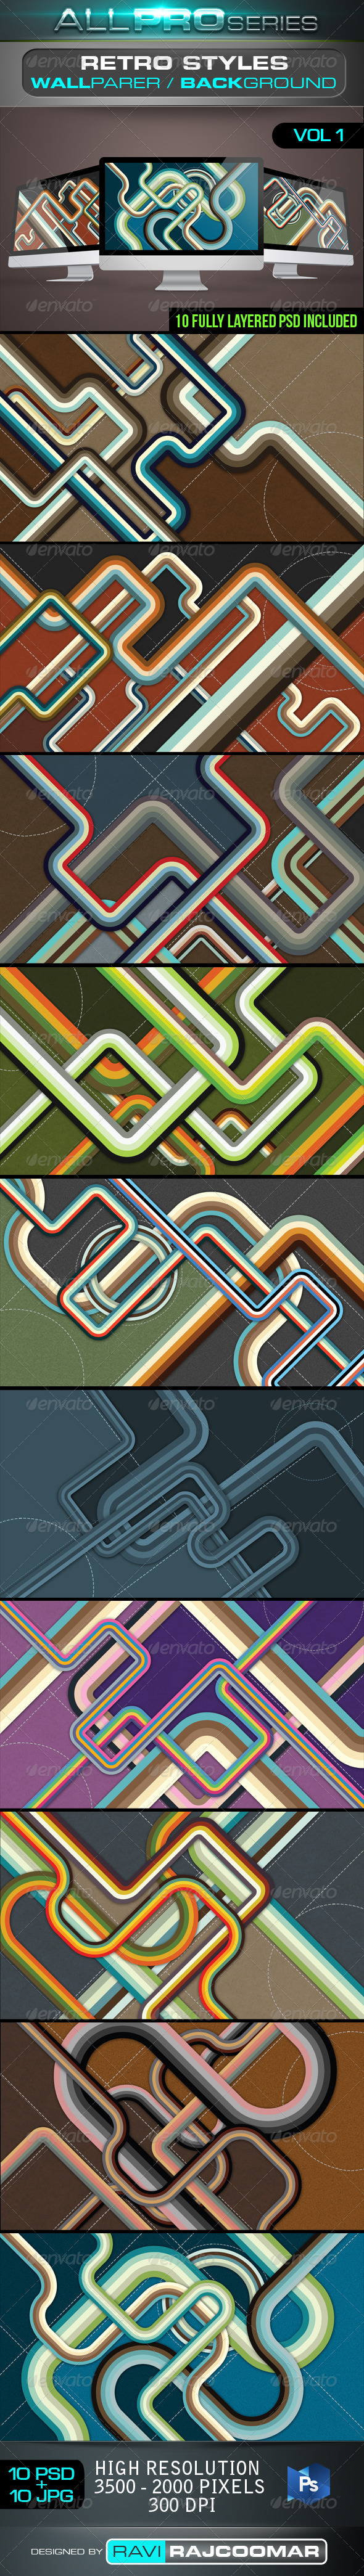 Retro Style Background Vol.1 - Abstract Backgrounds